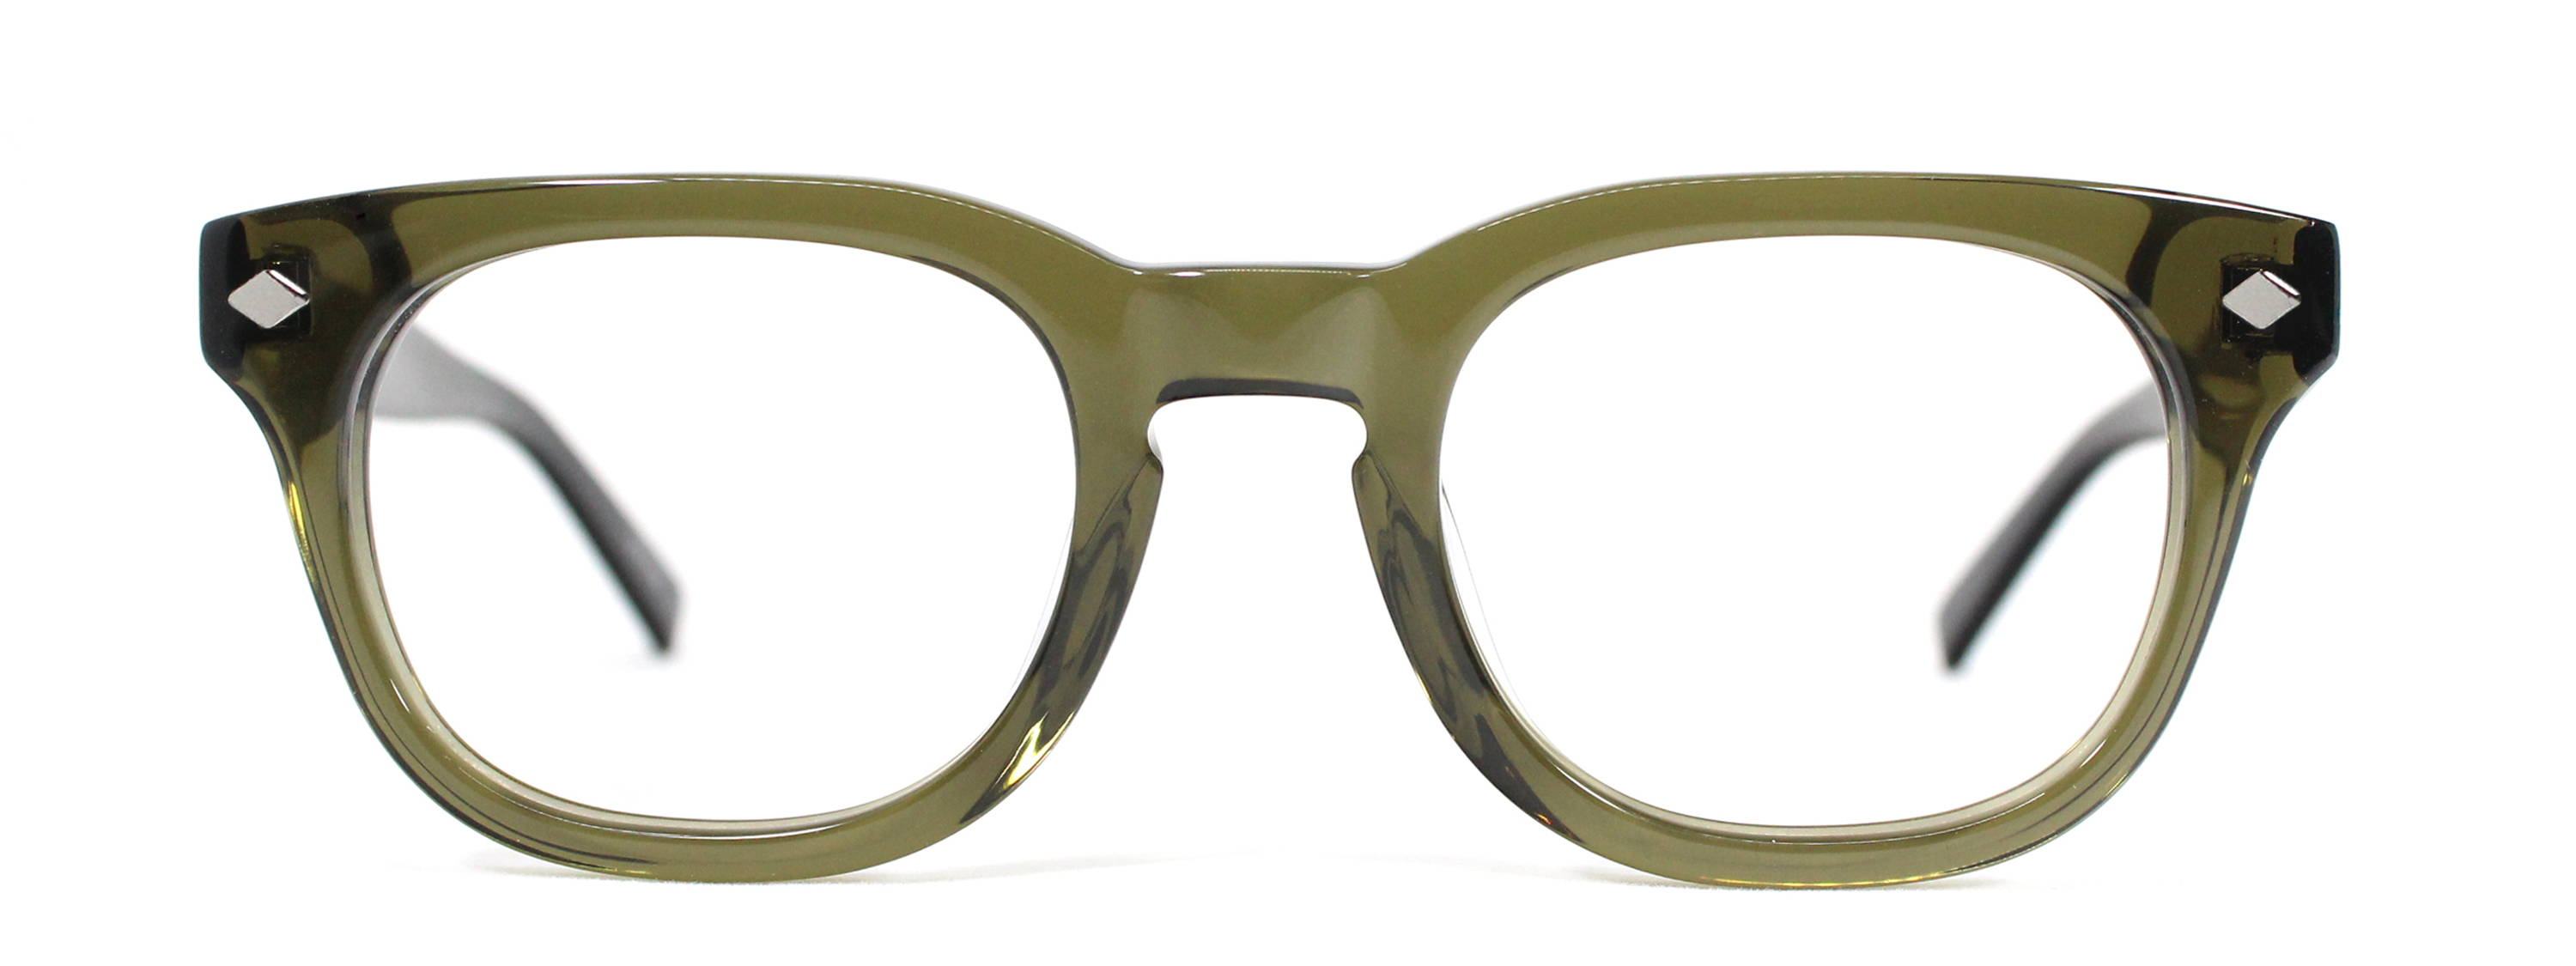 4914ee54d50e Brooklyn Spectacles